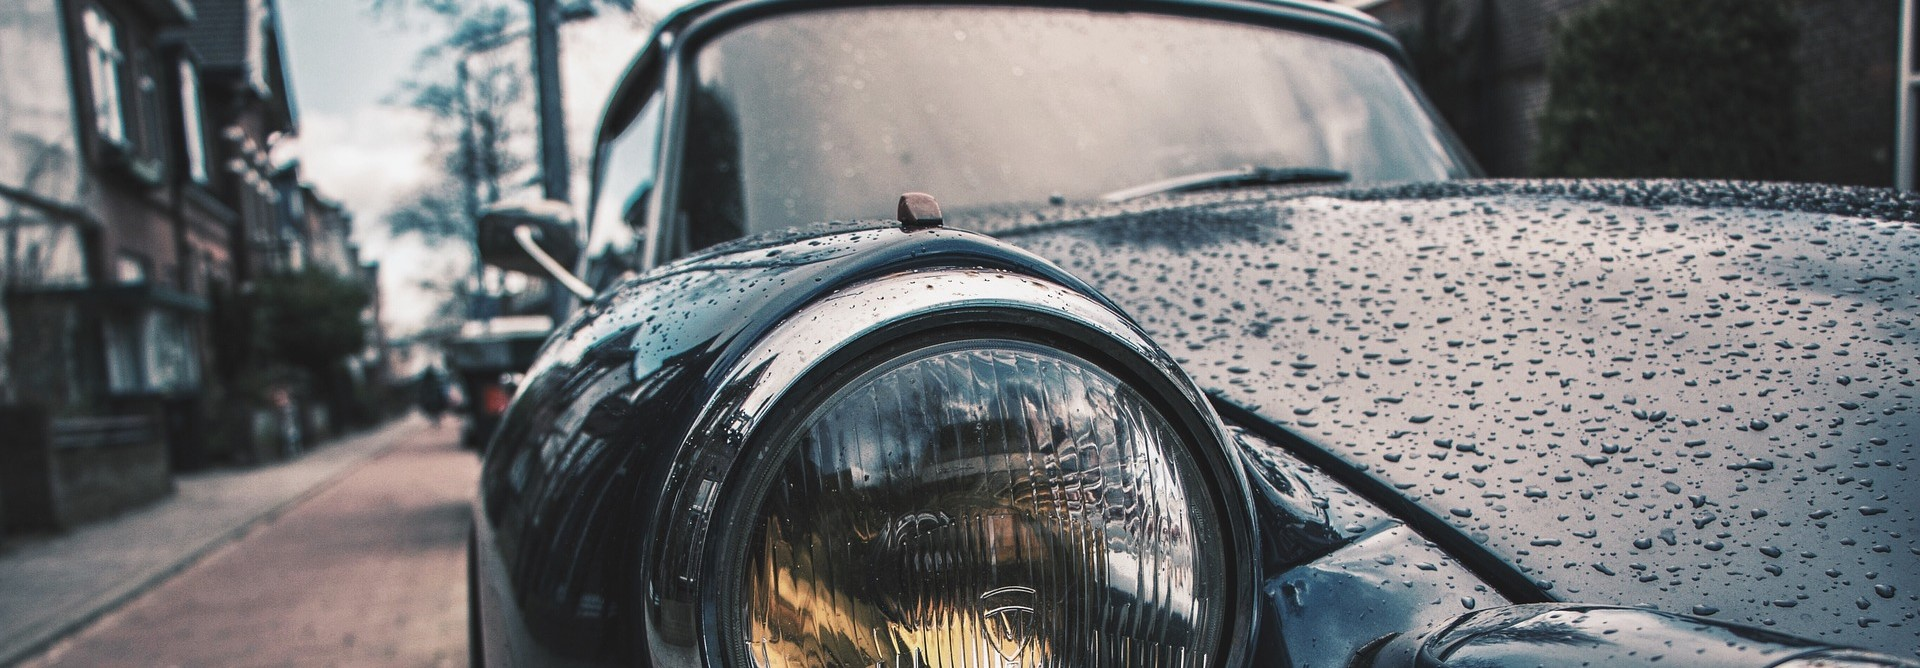 Oldtimer Car at the Road | Breast Cancer Car Donations